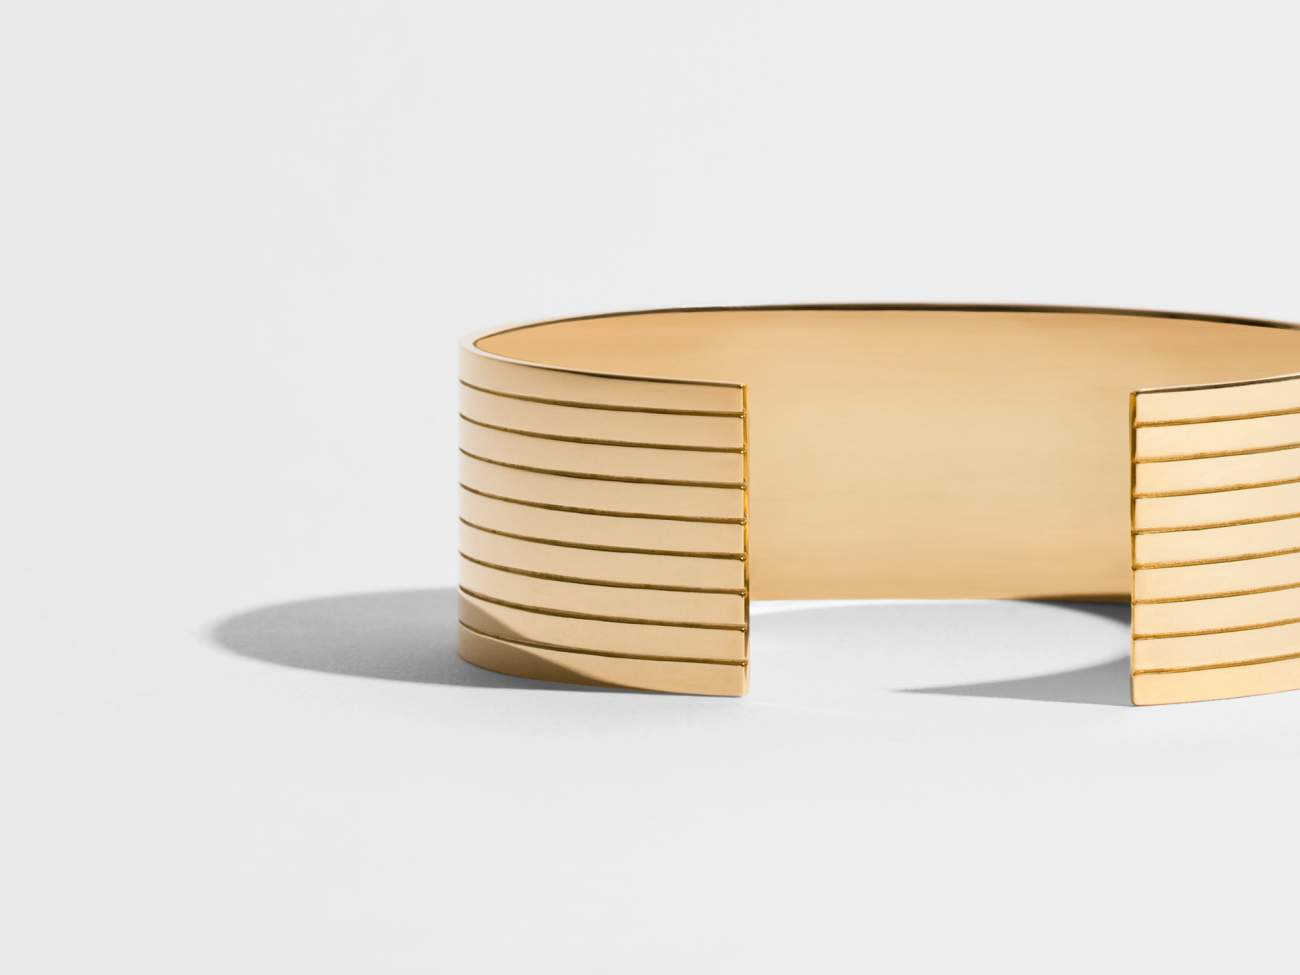 JEM_C07_BY04_collection_sillons_or_manchette_ethique_fairmined_ethical_gold_cuff-©Iris-Rey